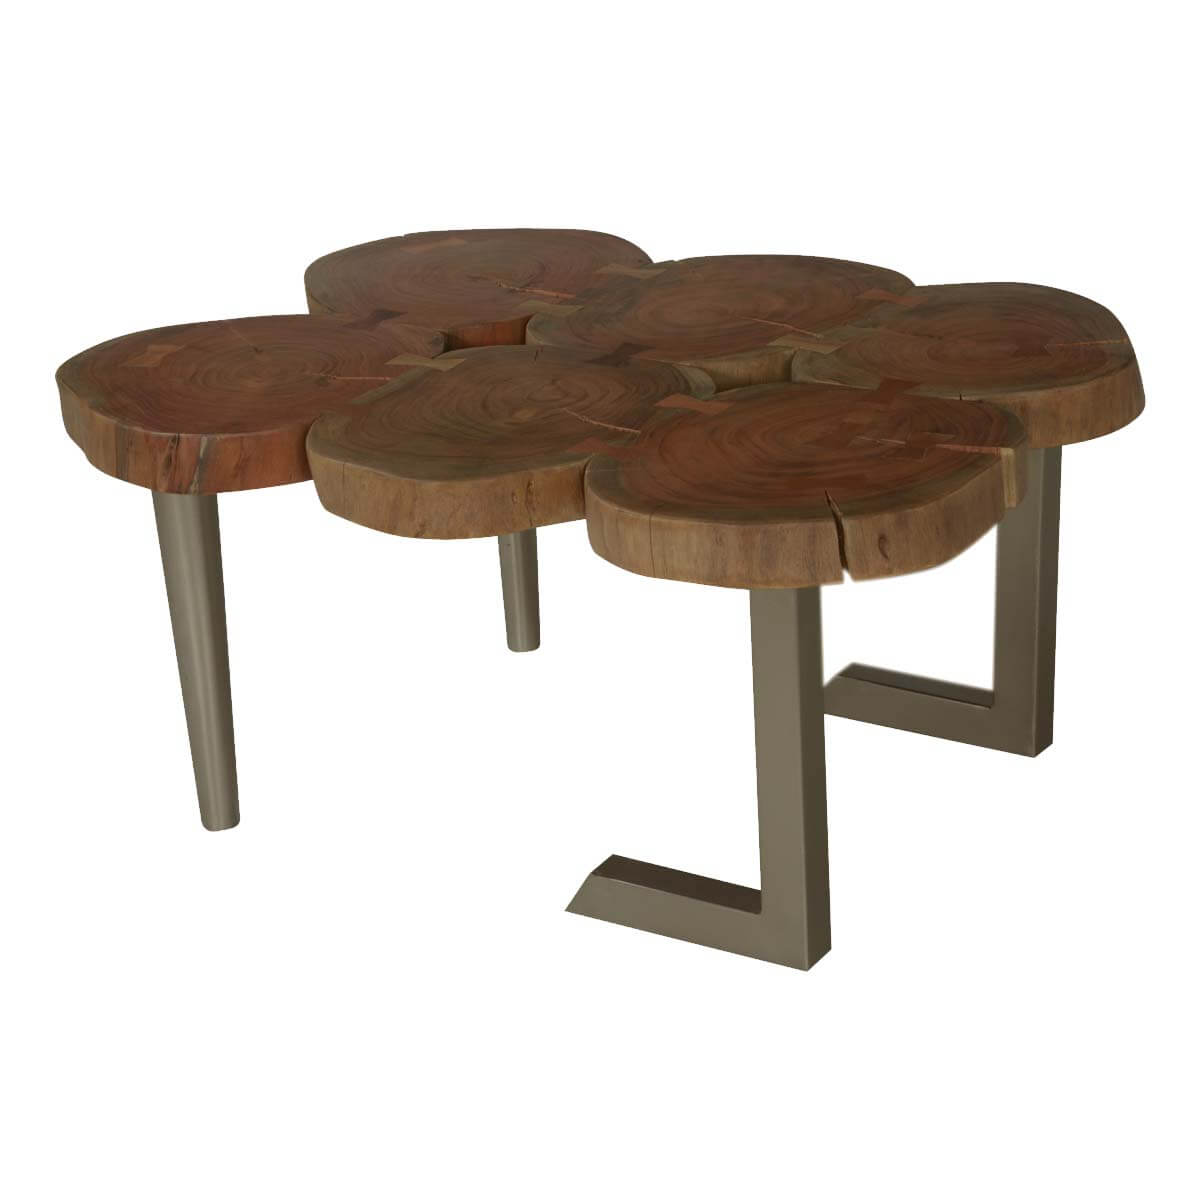 6 Stump Table Top Acacia Wood Amp Iron Centerpiece Coffee Table